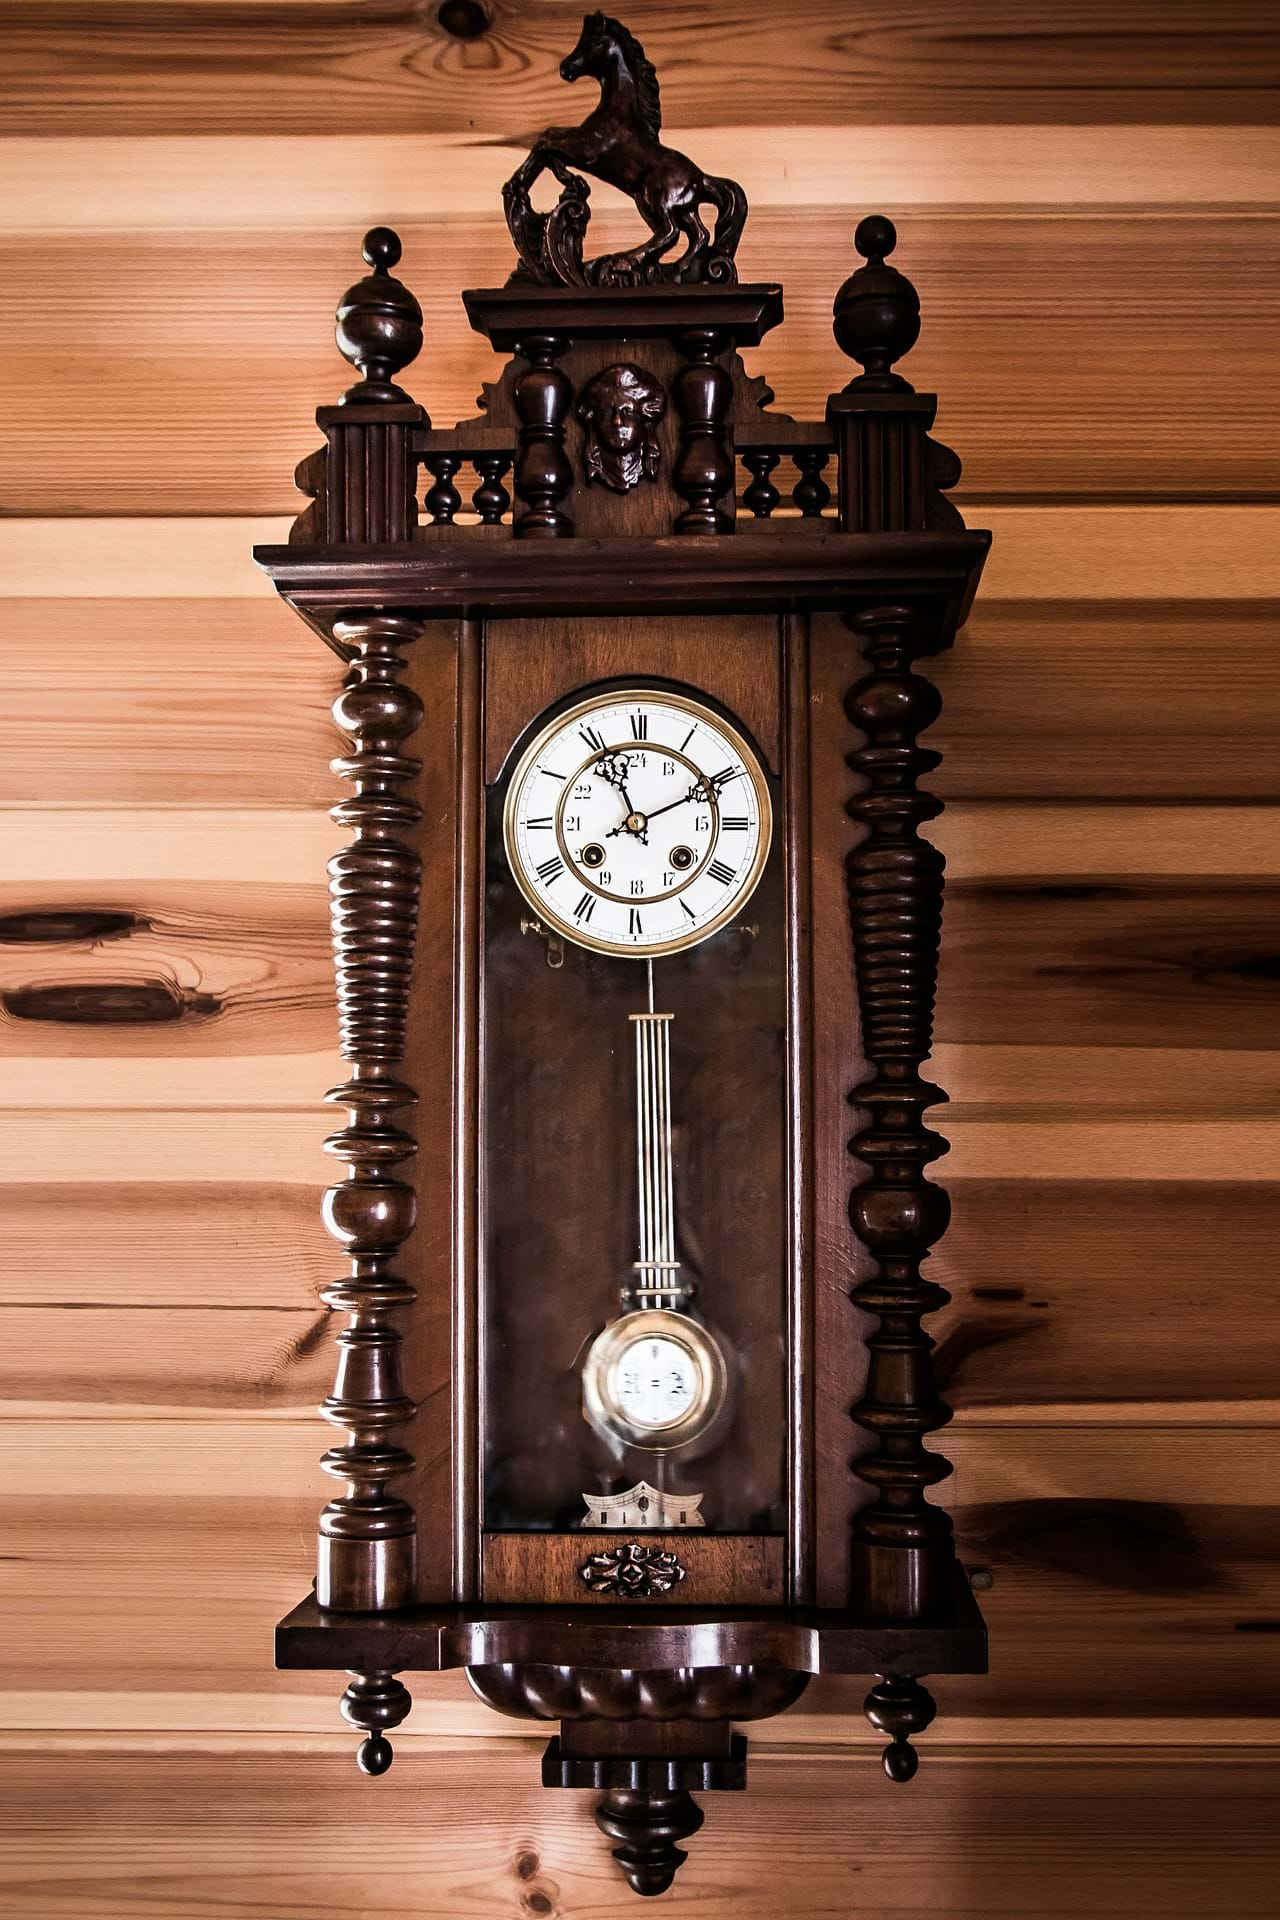 A wooden clock with a pendulum